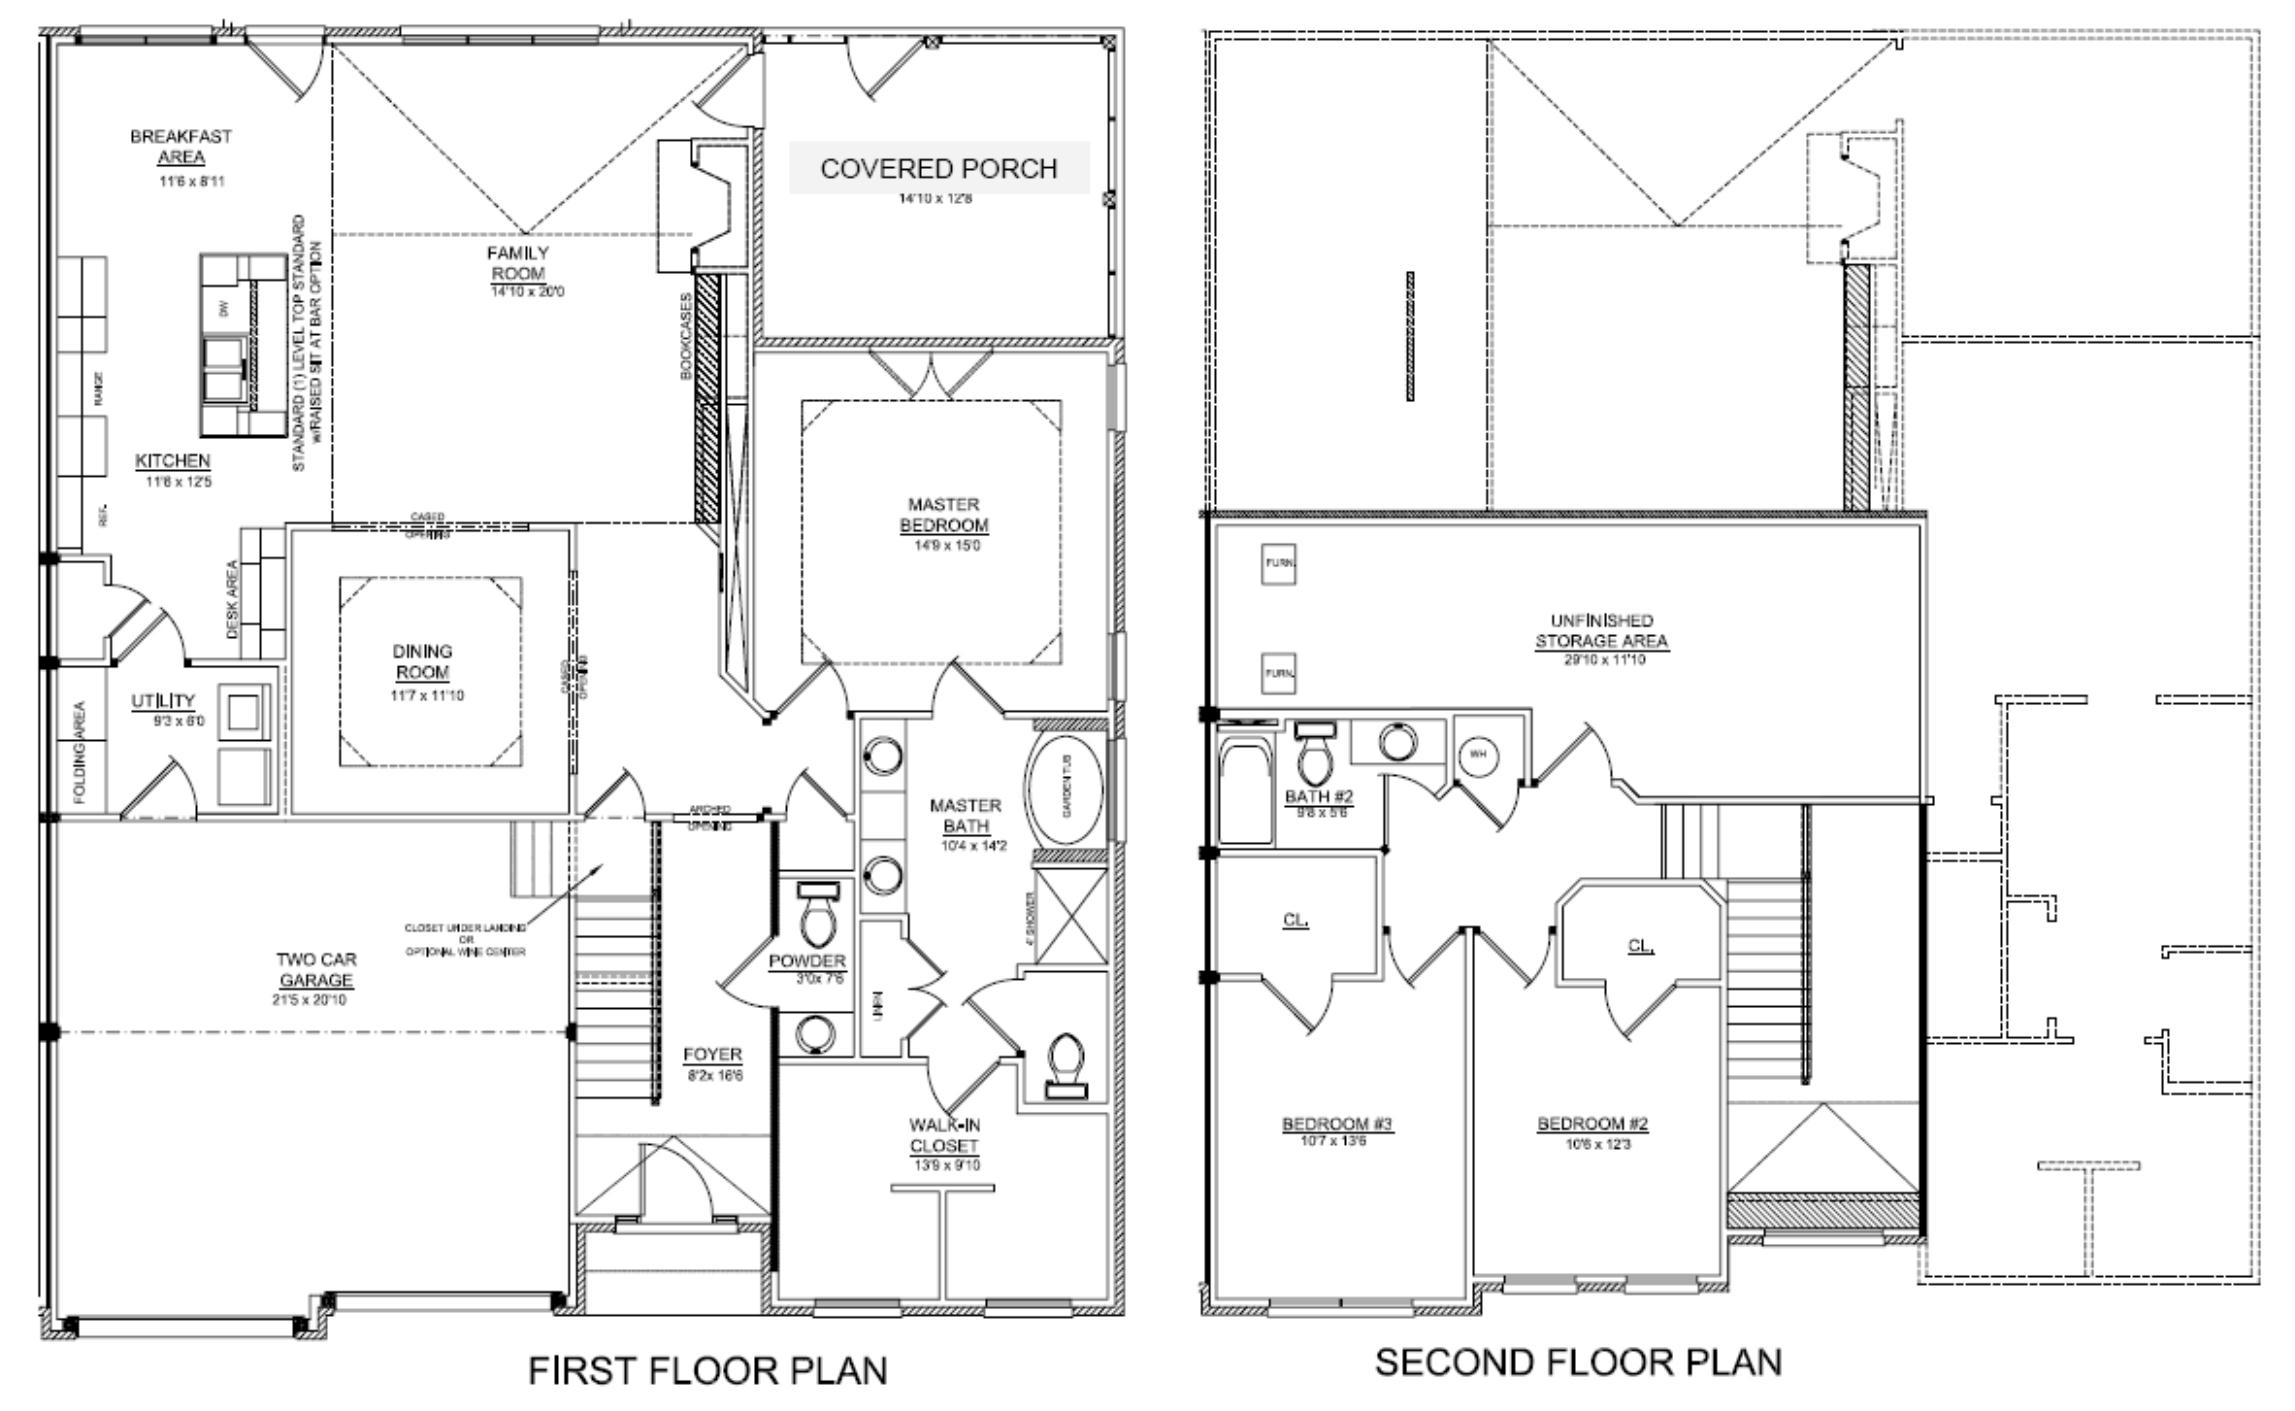 25 delightful luxury townhome floor plans building plans Luxury townhome floor plans